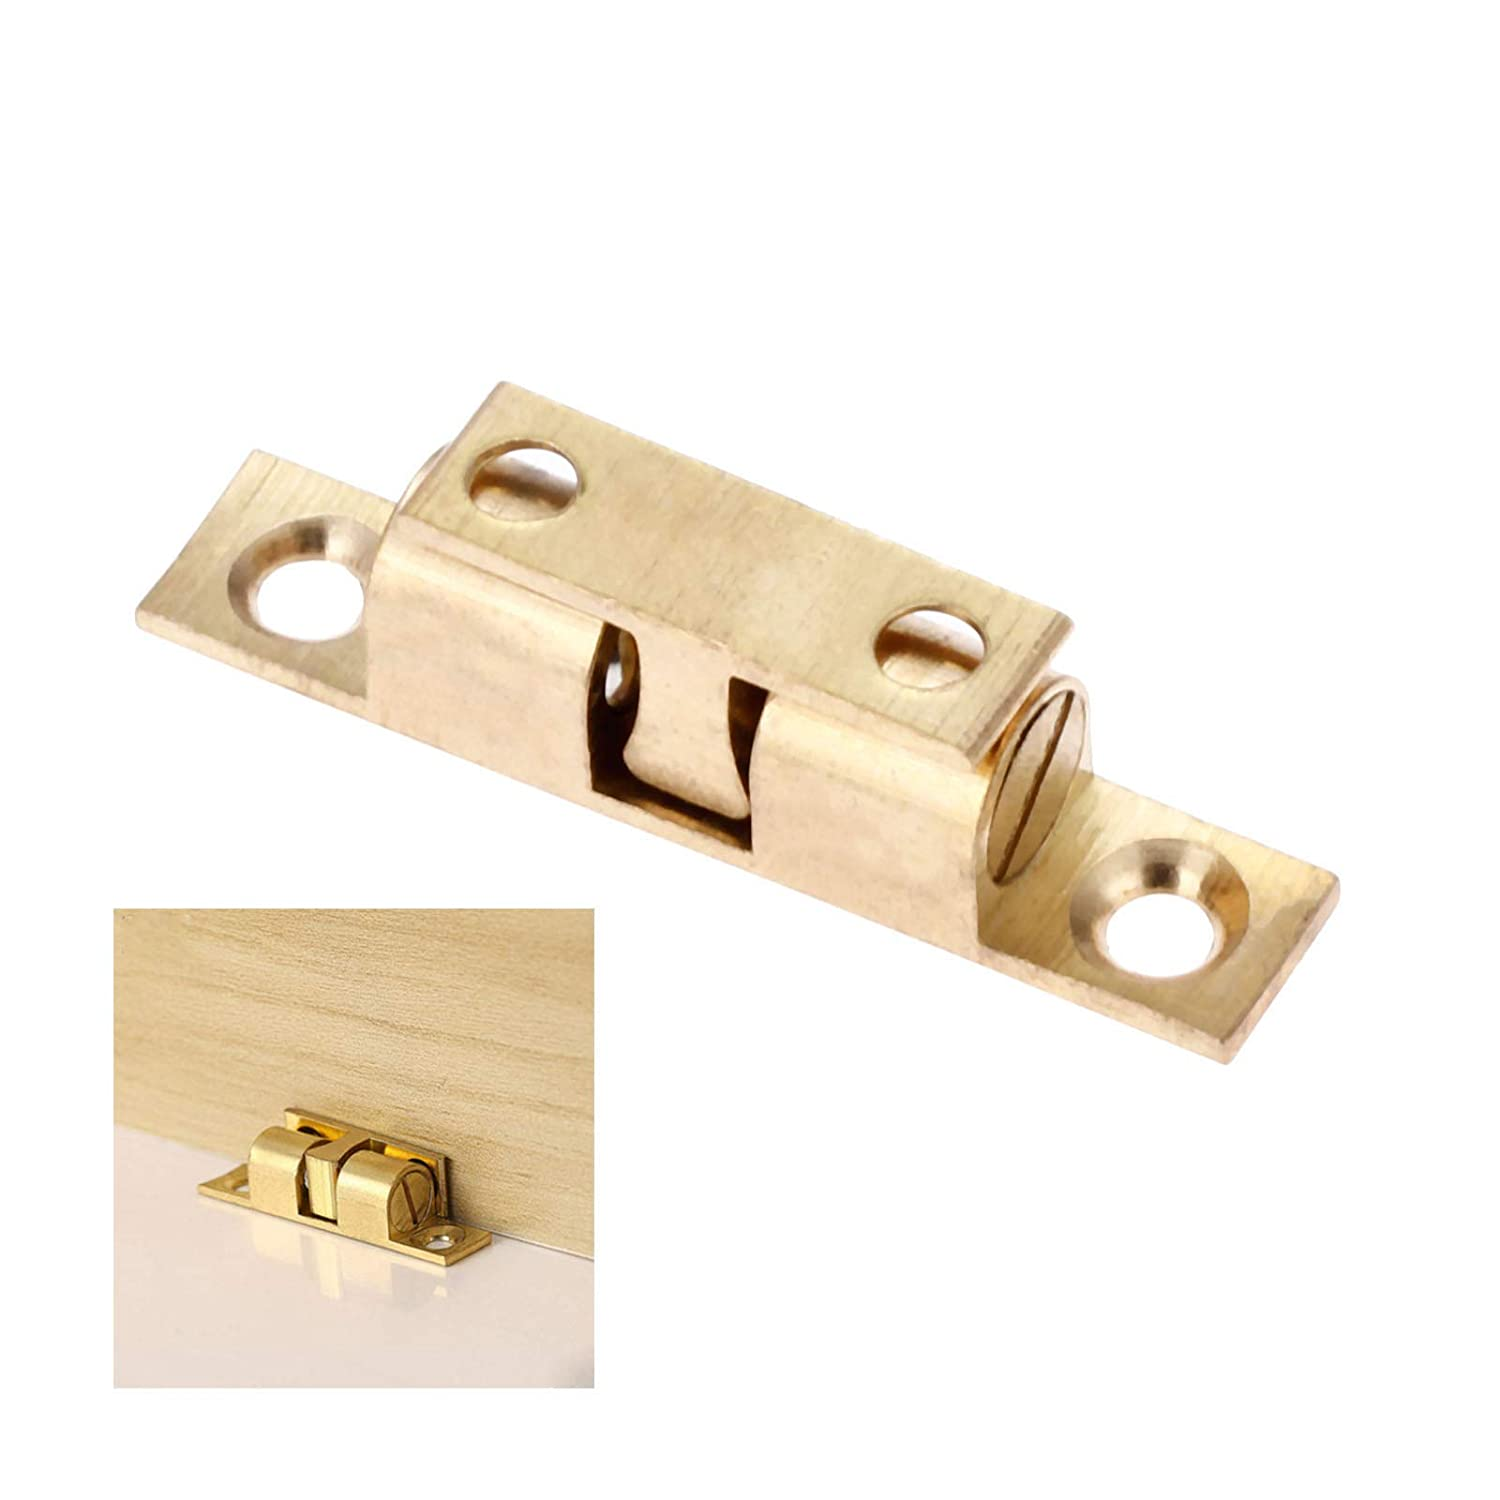 4pcs Cabinet Door Brass Double Ball Roller Catches Hardware Fittings 50mm Long